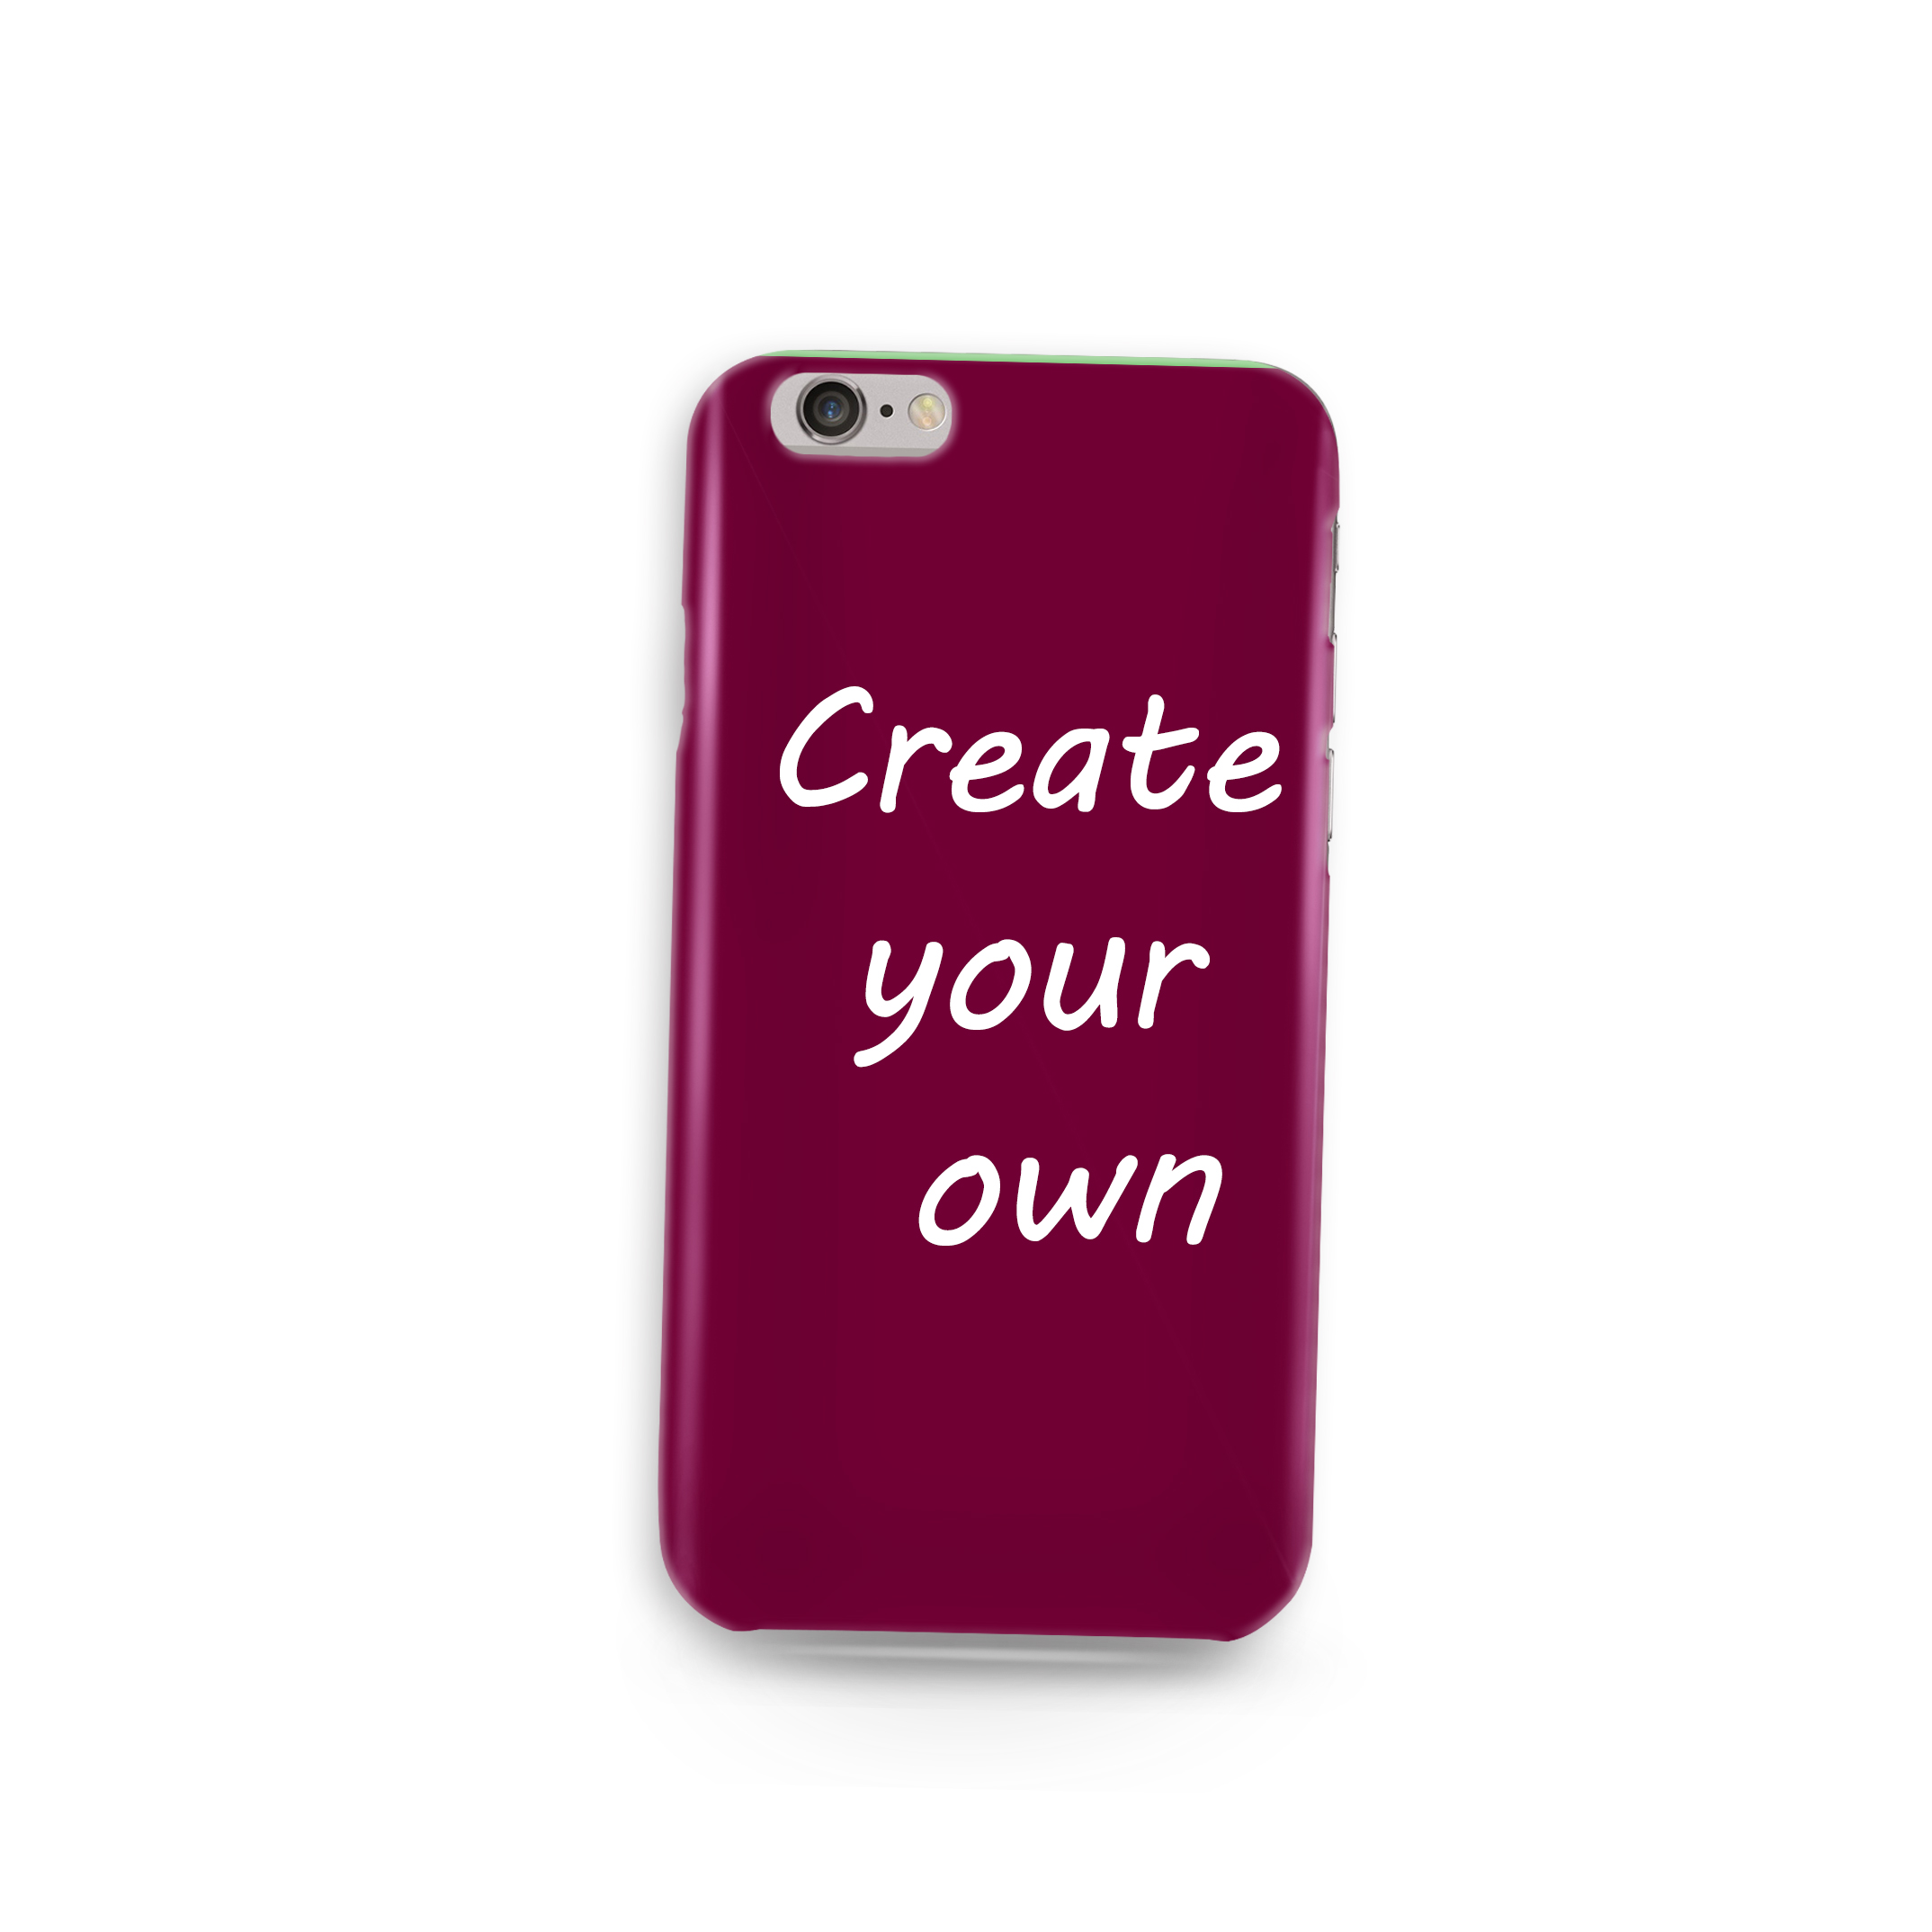 Creativity Silicon Customized Mobile Phone Cover